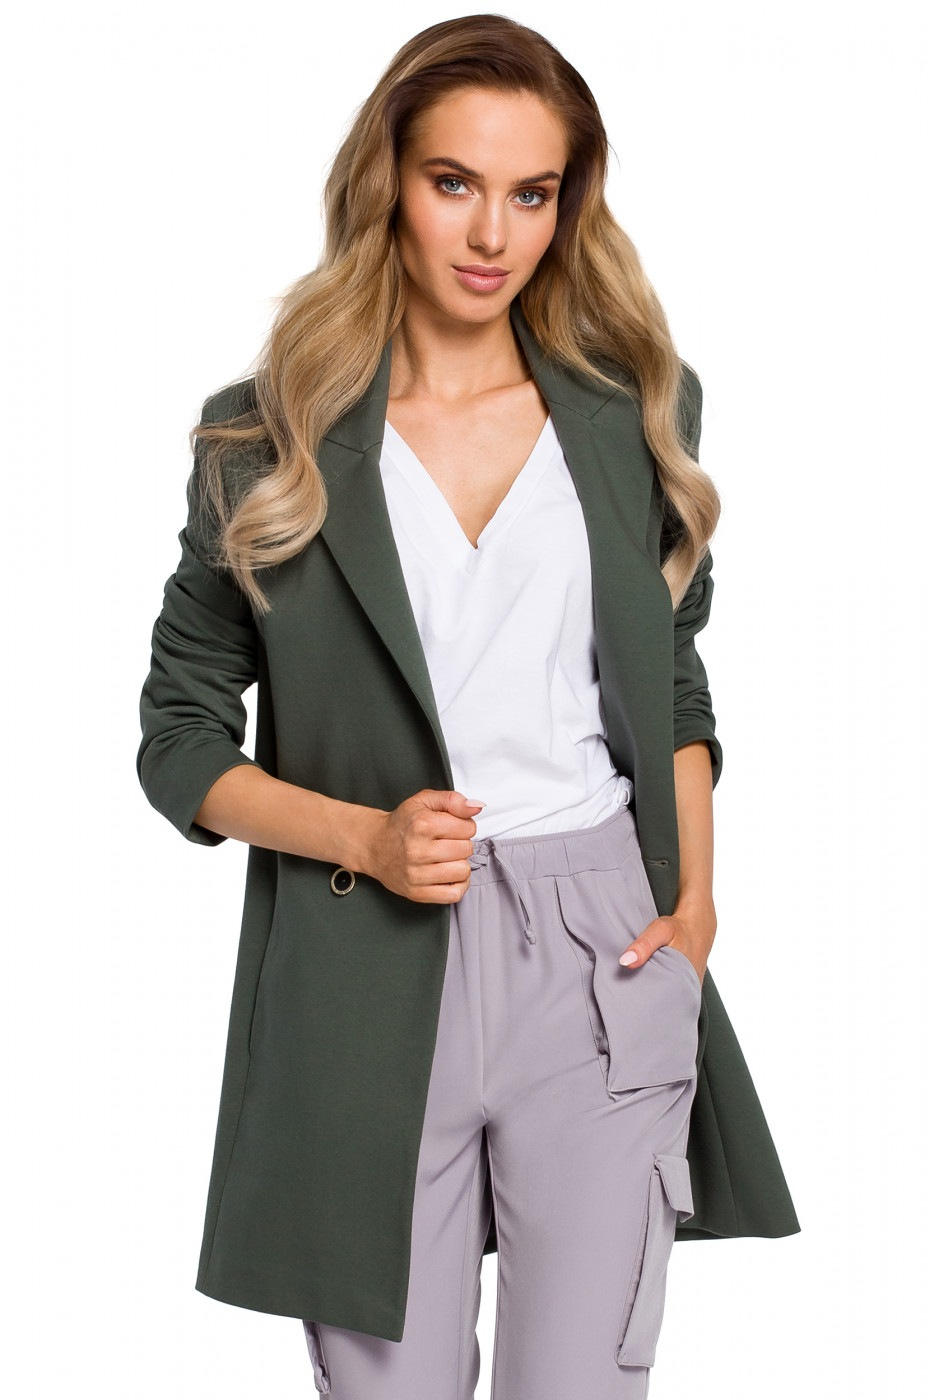 Made Of Emotion Woman's Jacket M429 Military